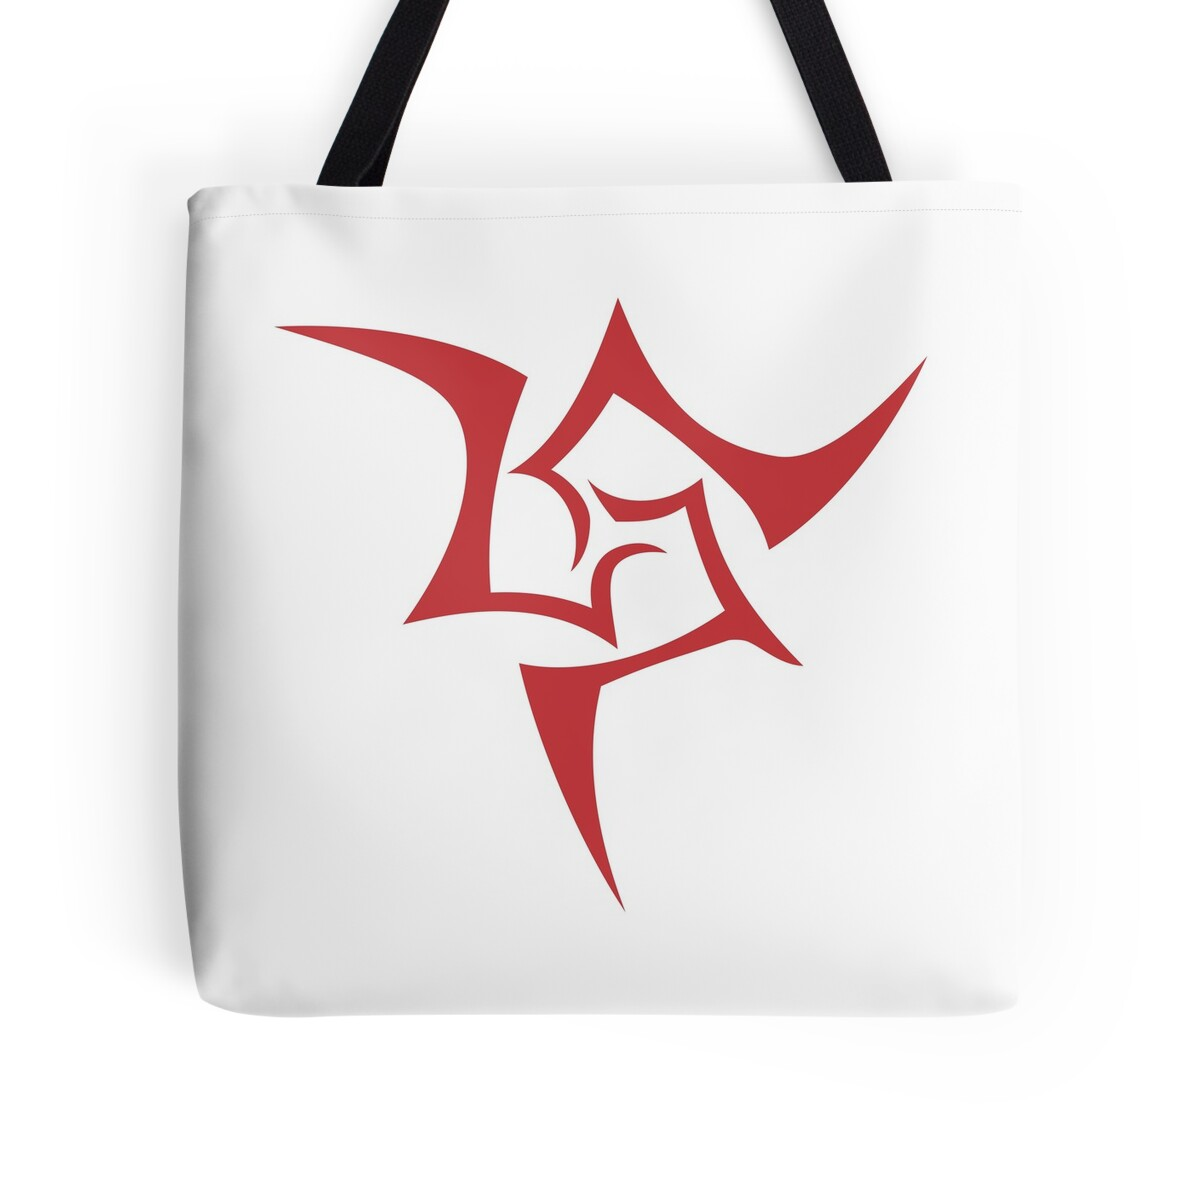 Fate zero berserker command seal tote bags by ideoinc redbubble fate zero berserker command seal by ideoinc biocorpaavc